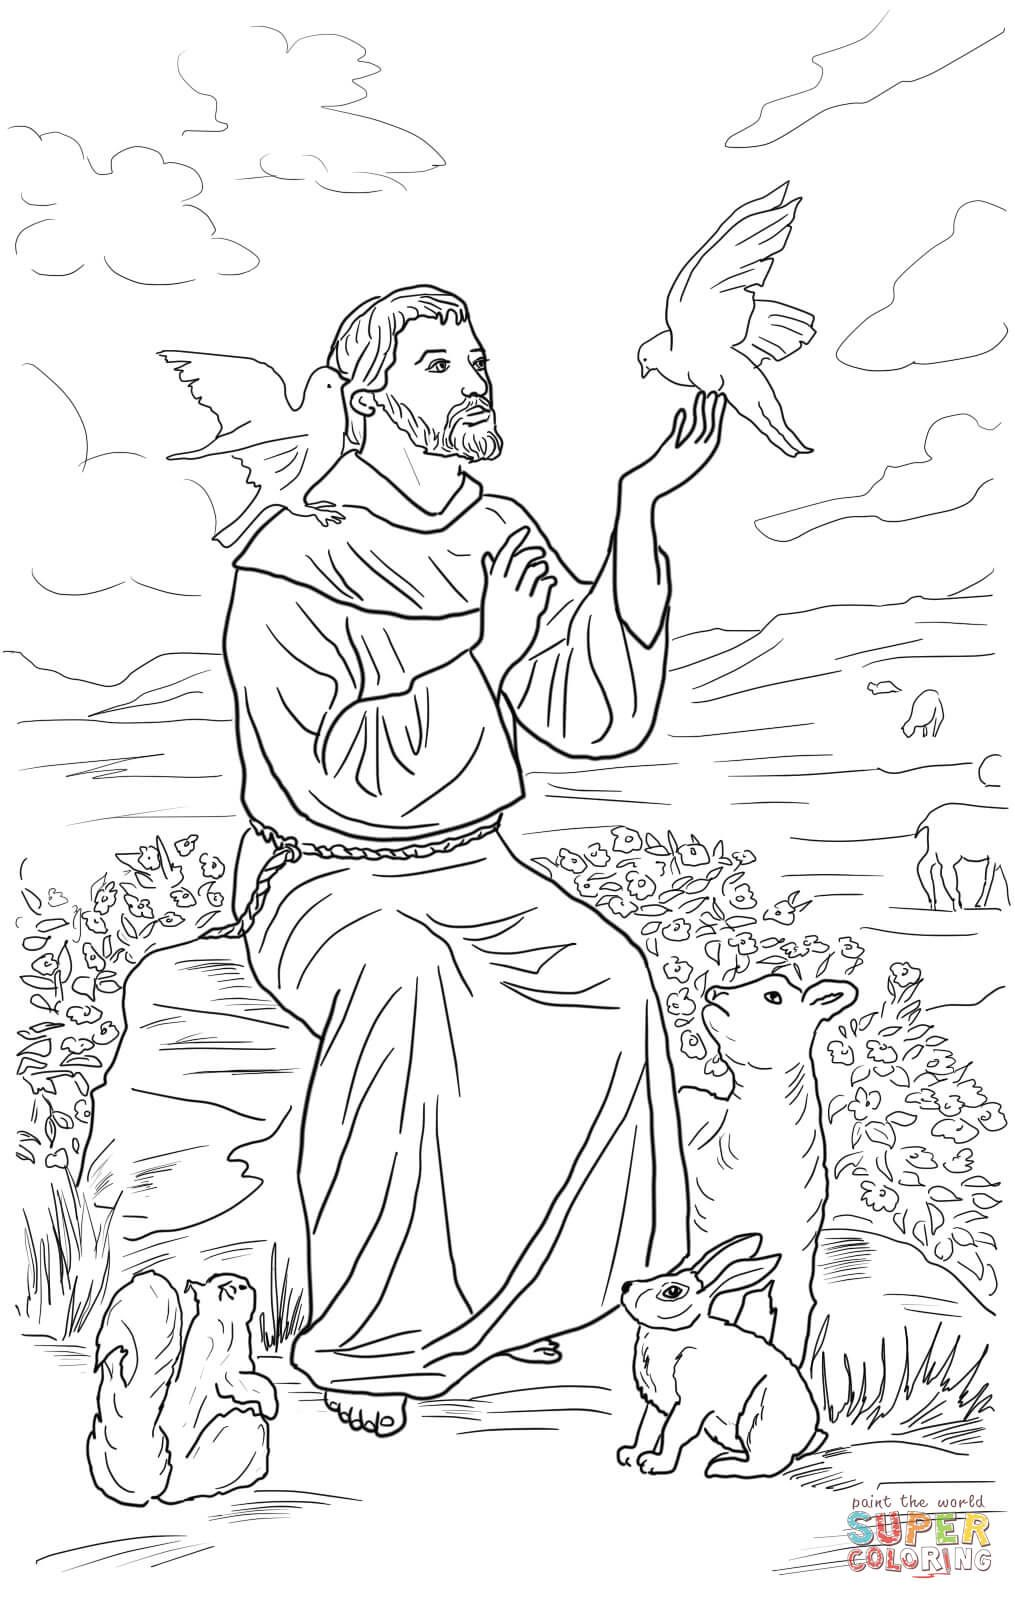 Saint Francis of Assisi coloring page from Saints category